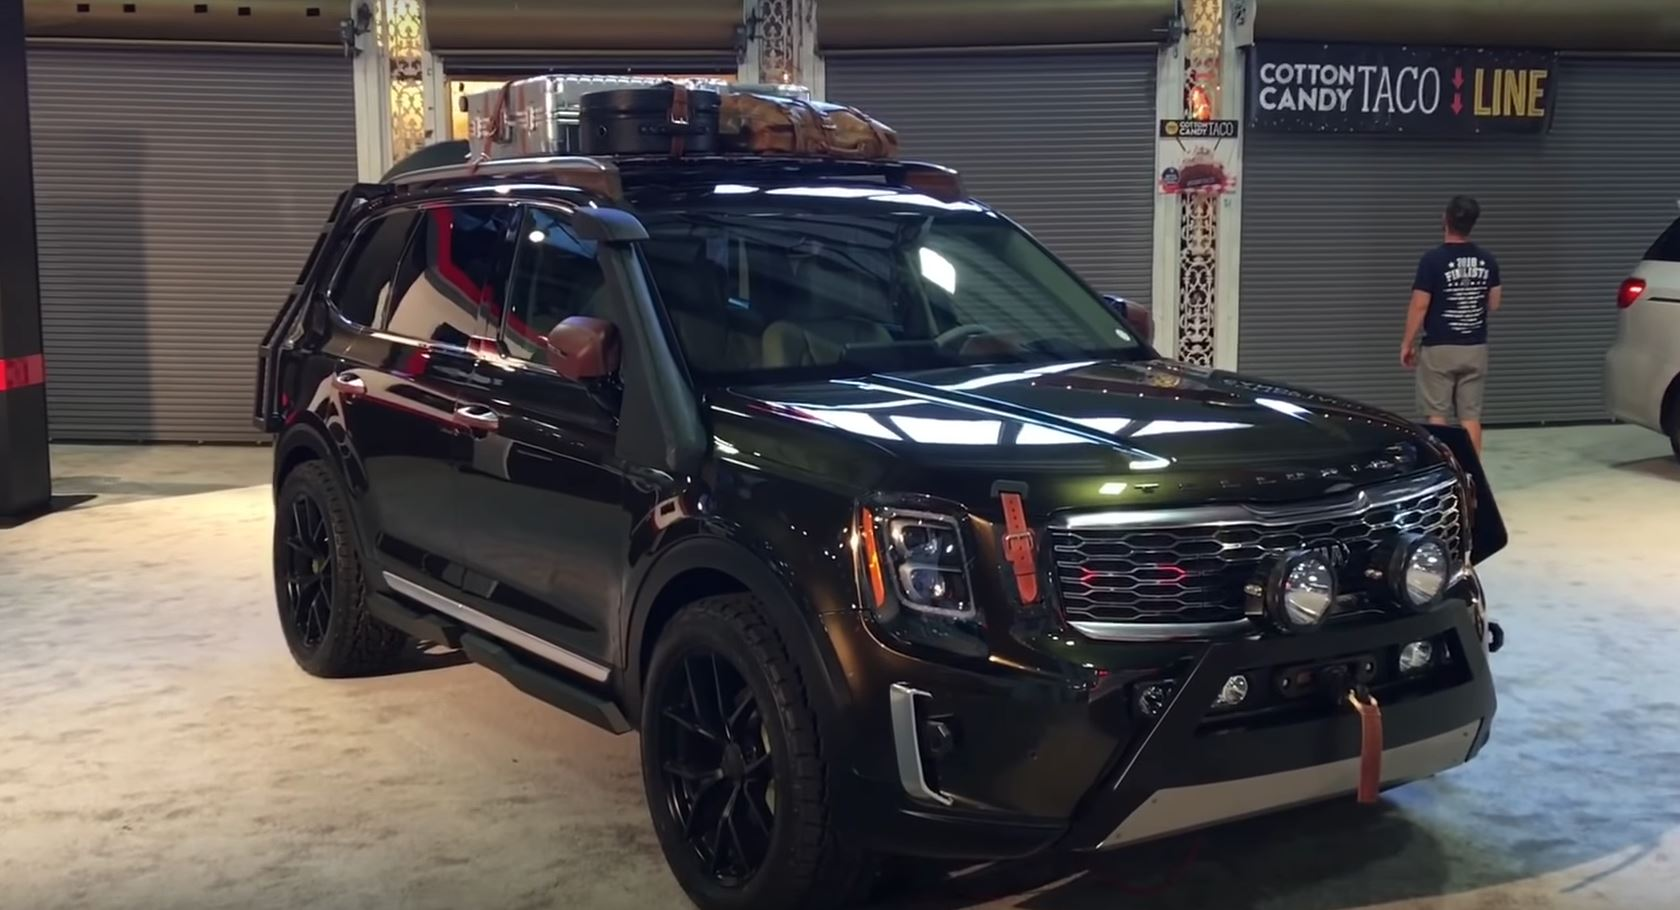 2020 Kia Telluride - thoughts? | TigerDroppings.com